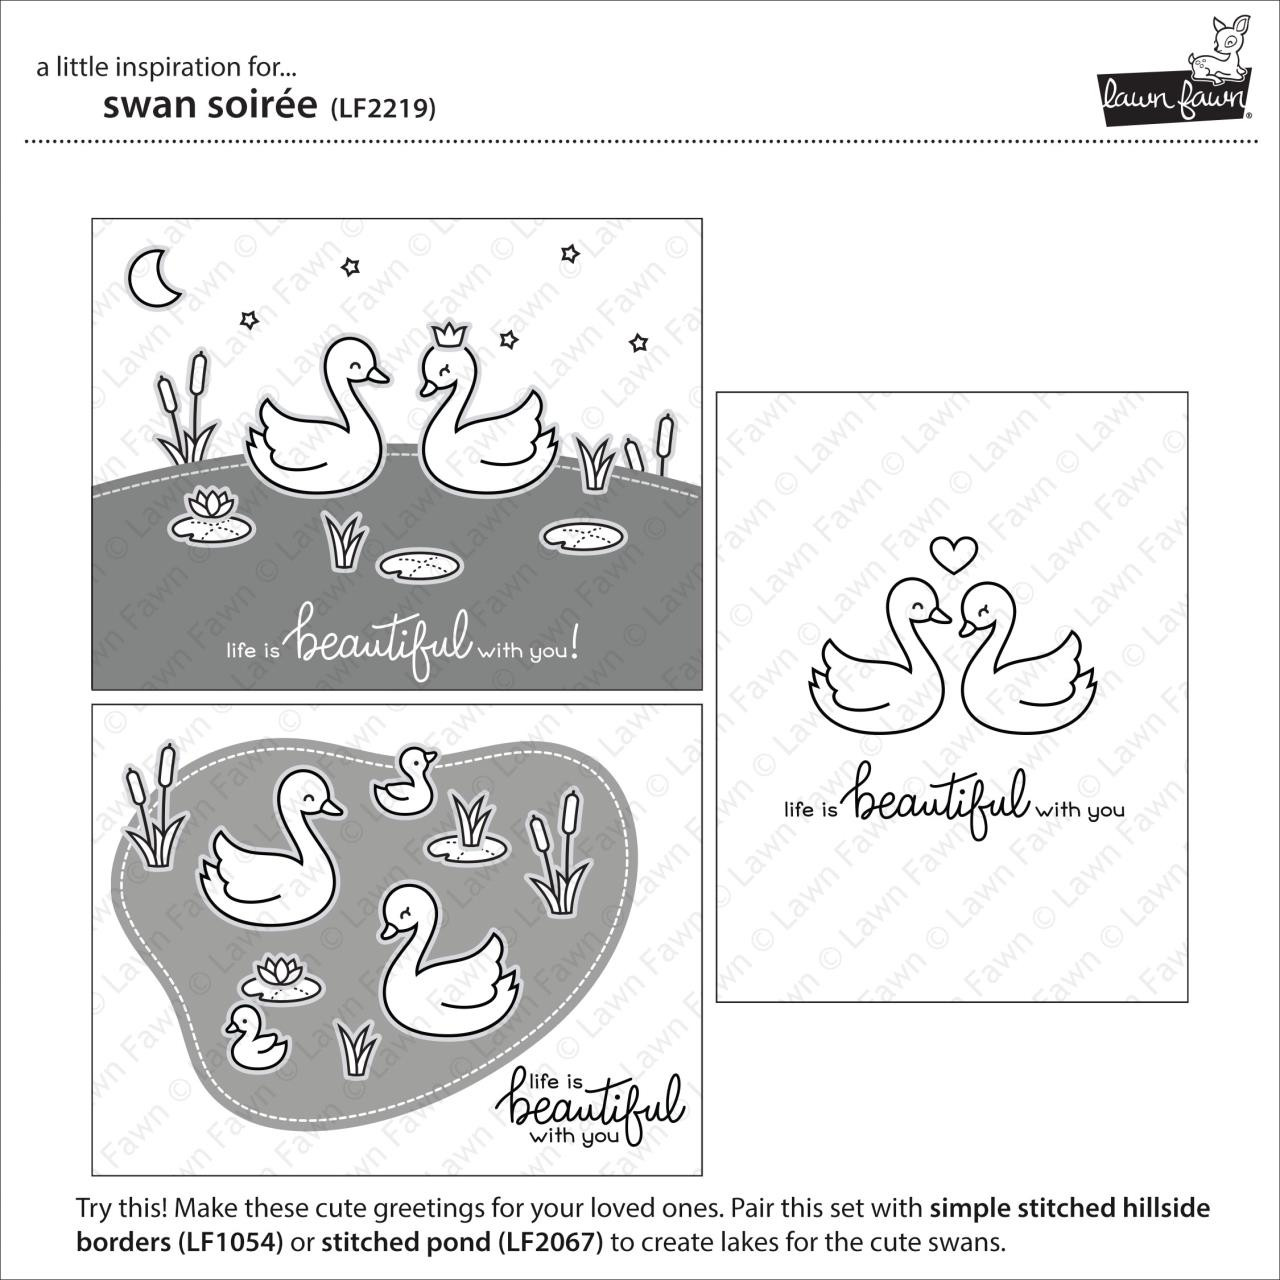 (PREORDER) Swan Soiree, Lawn Fawn Clear Stamps - 035292674592